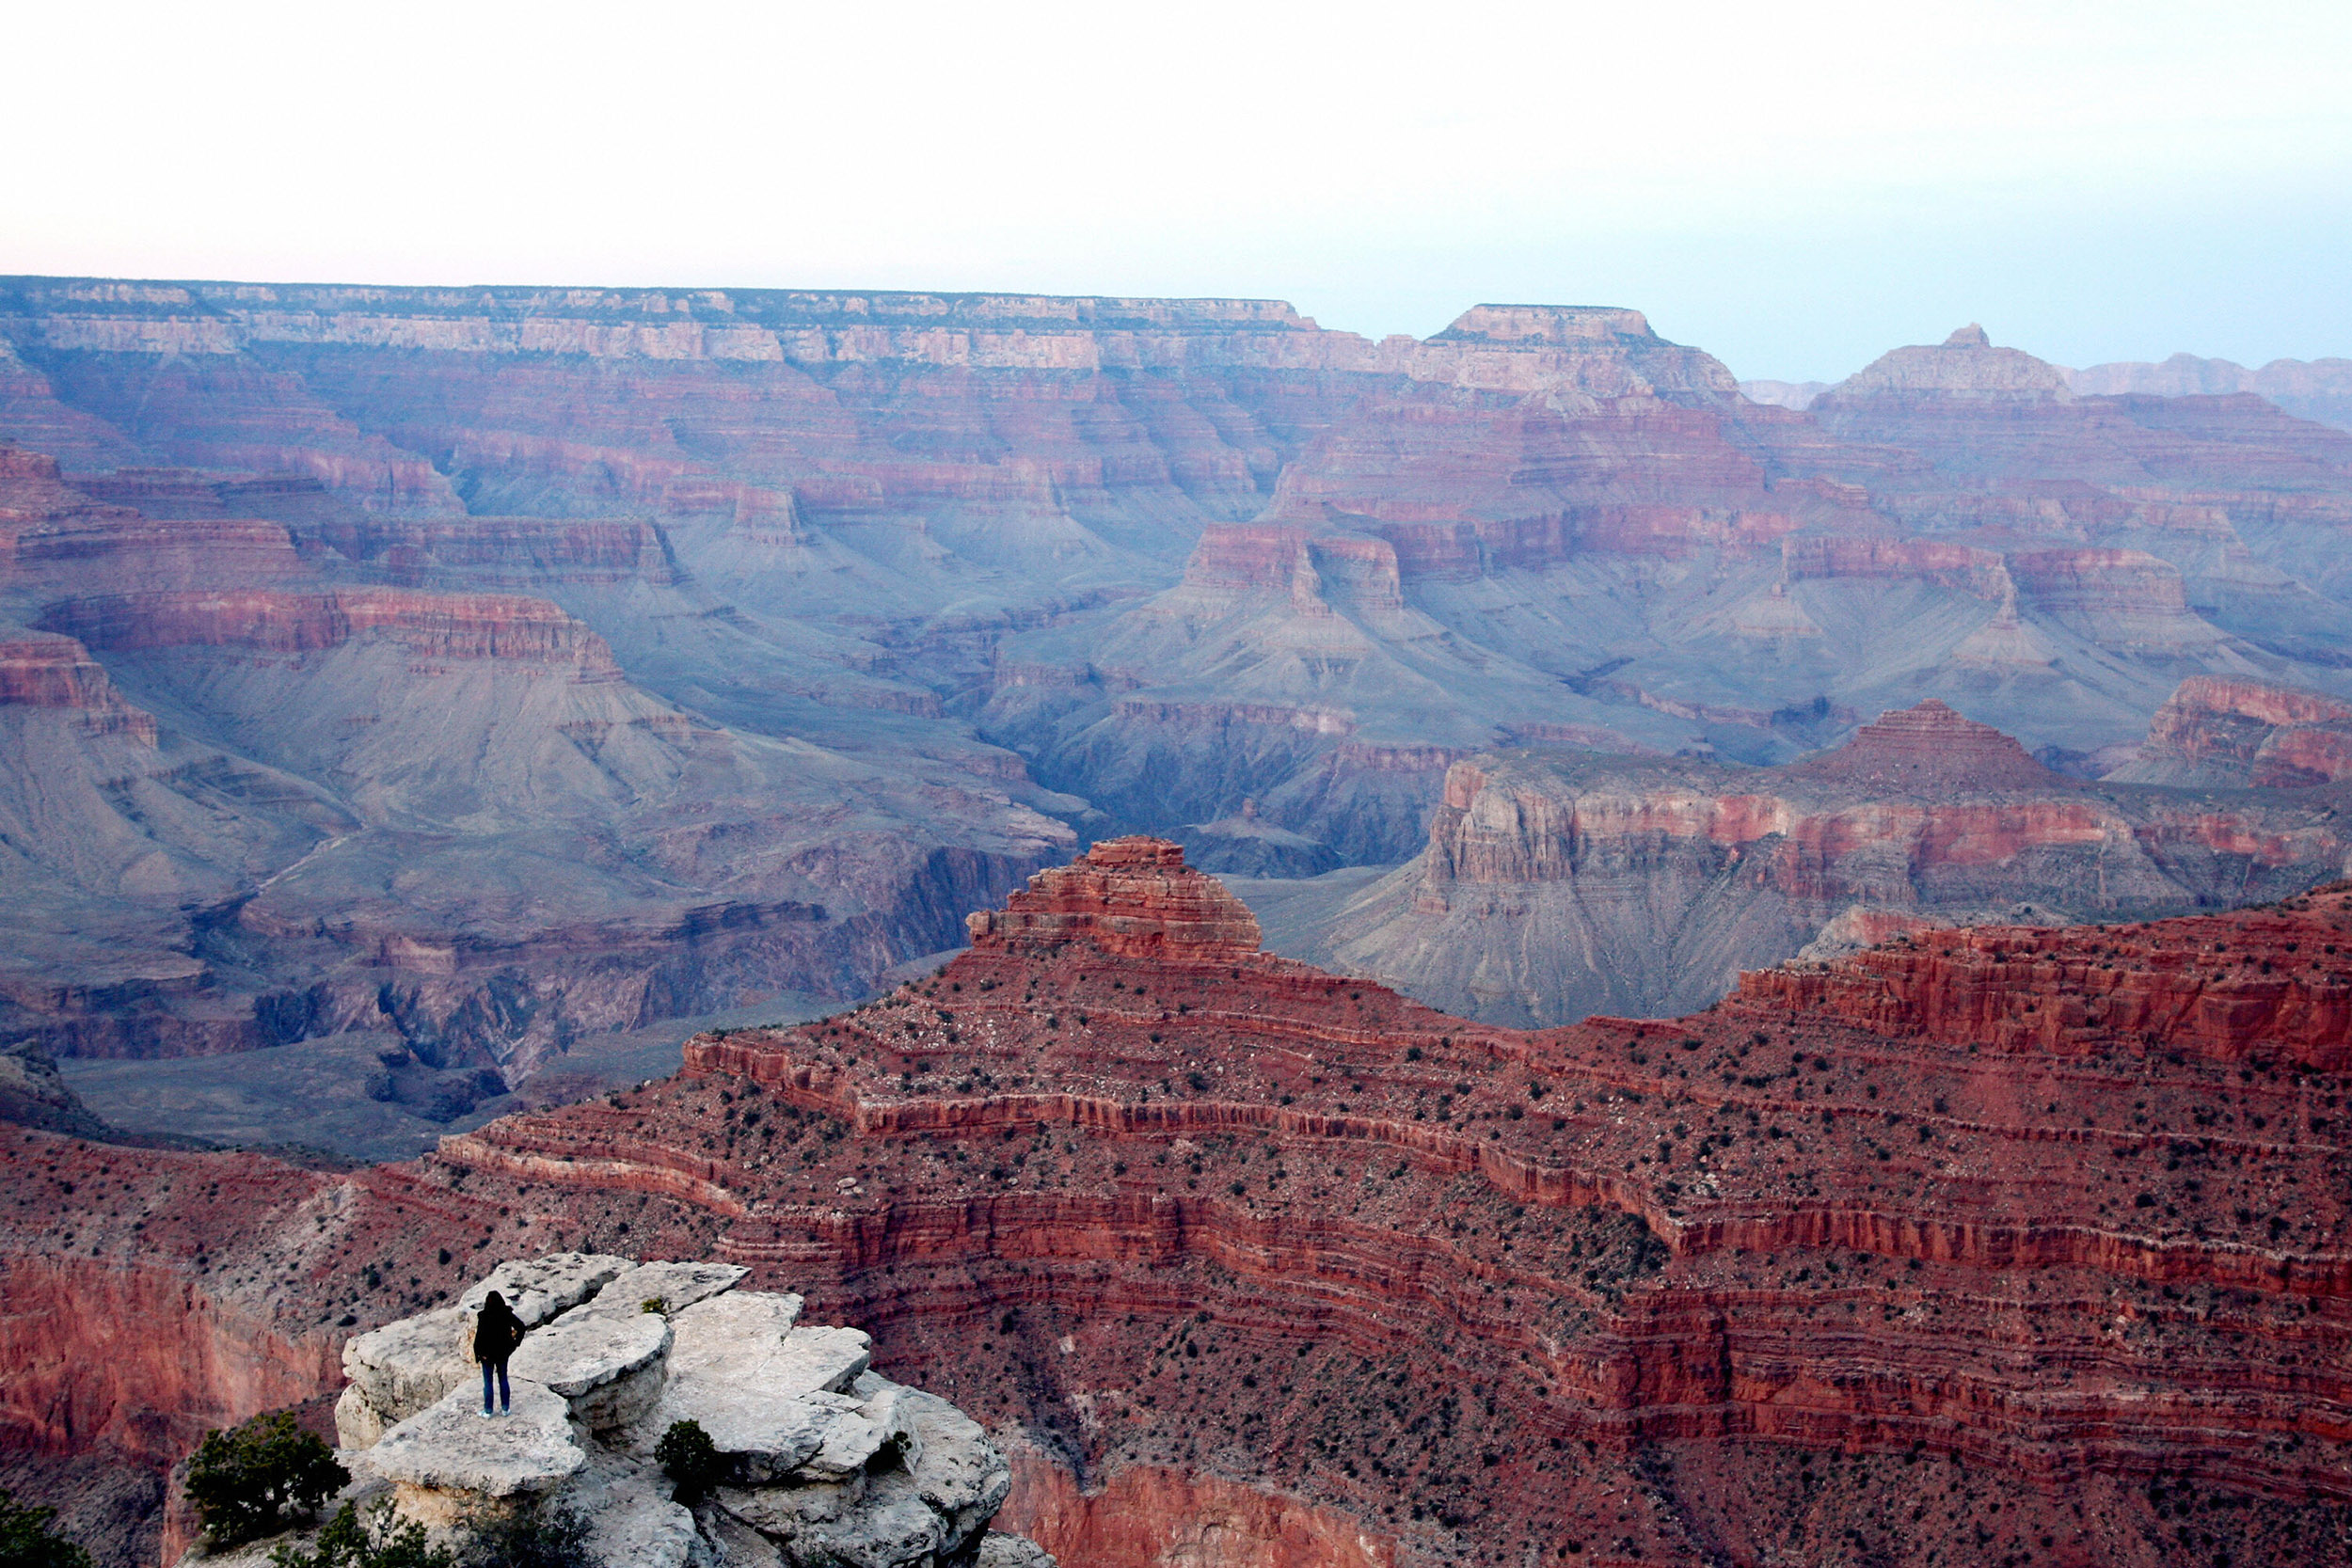 Man-dies-in-Arizona-tandem-skydiving-crash-near-Grand-Canyon-in-Arizona